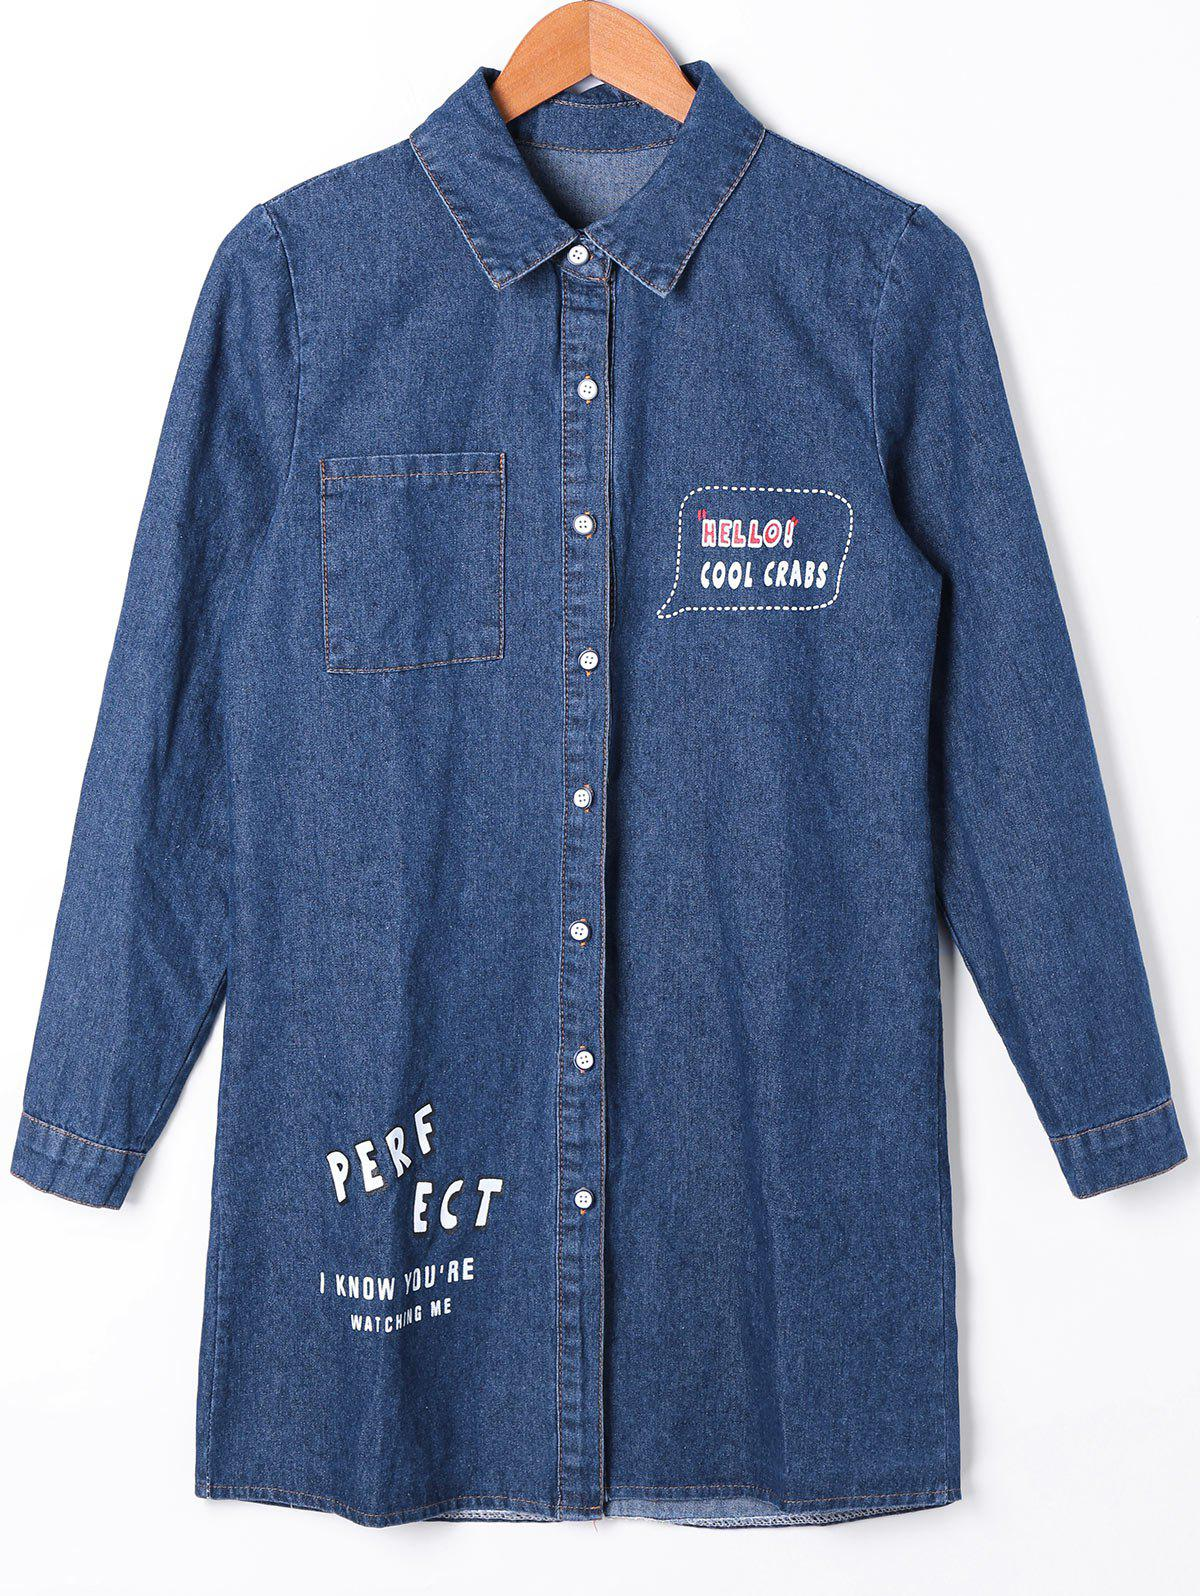 Patch Pocket Button Up Denim Shirt Coat - CERULEAN M